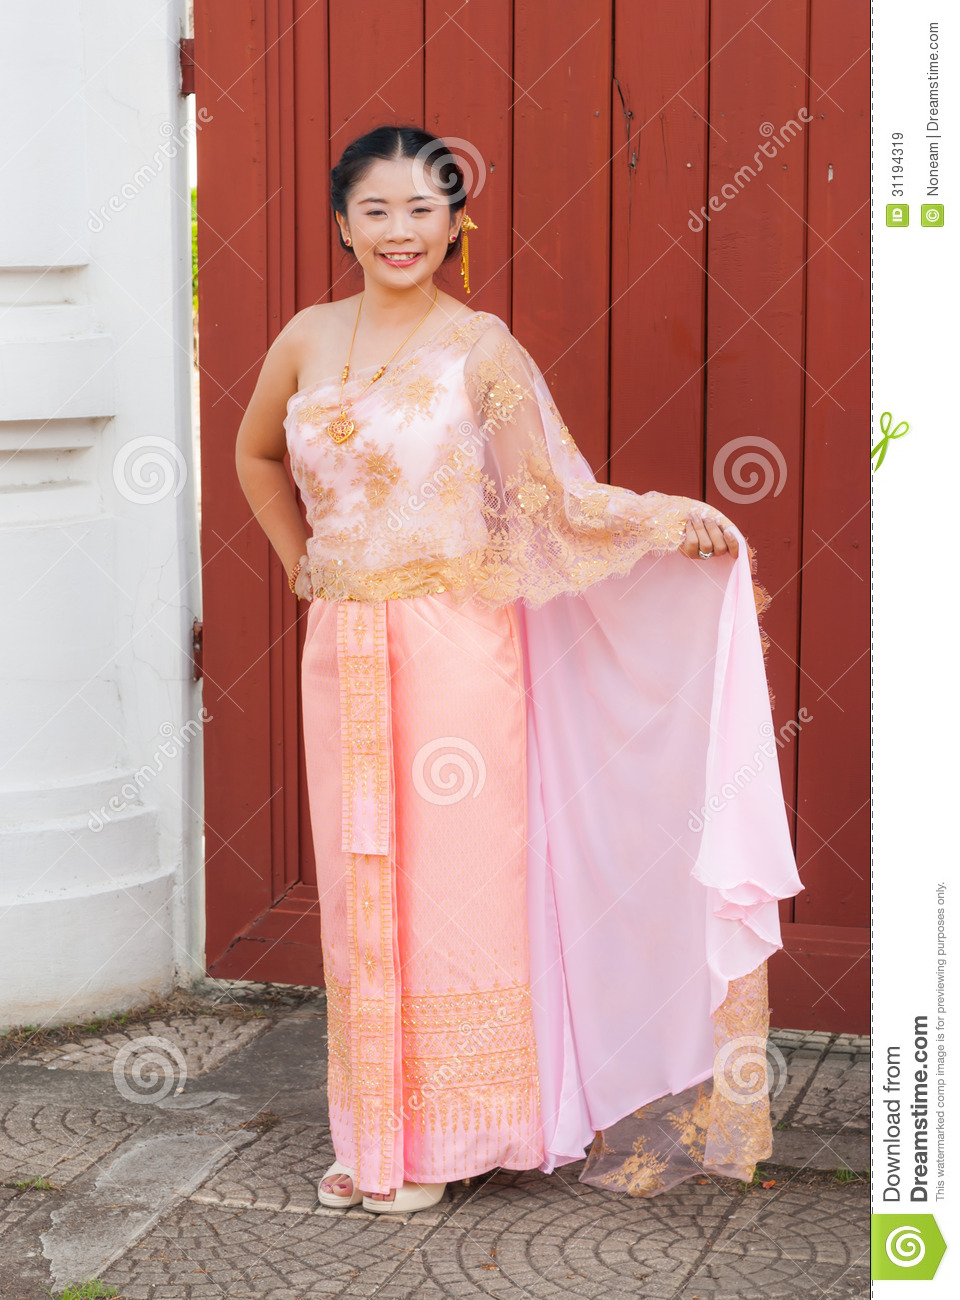 photo: Bride Thai Women